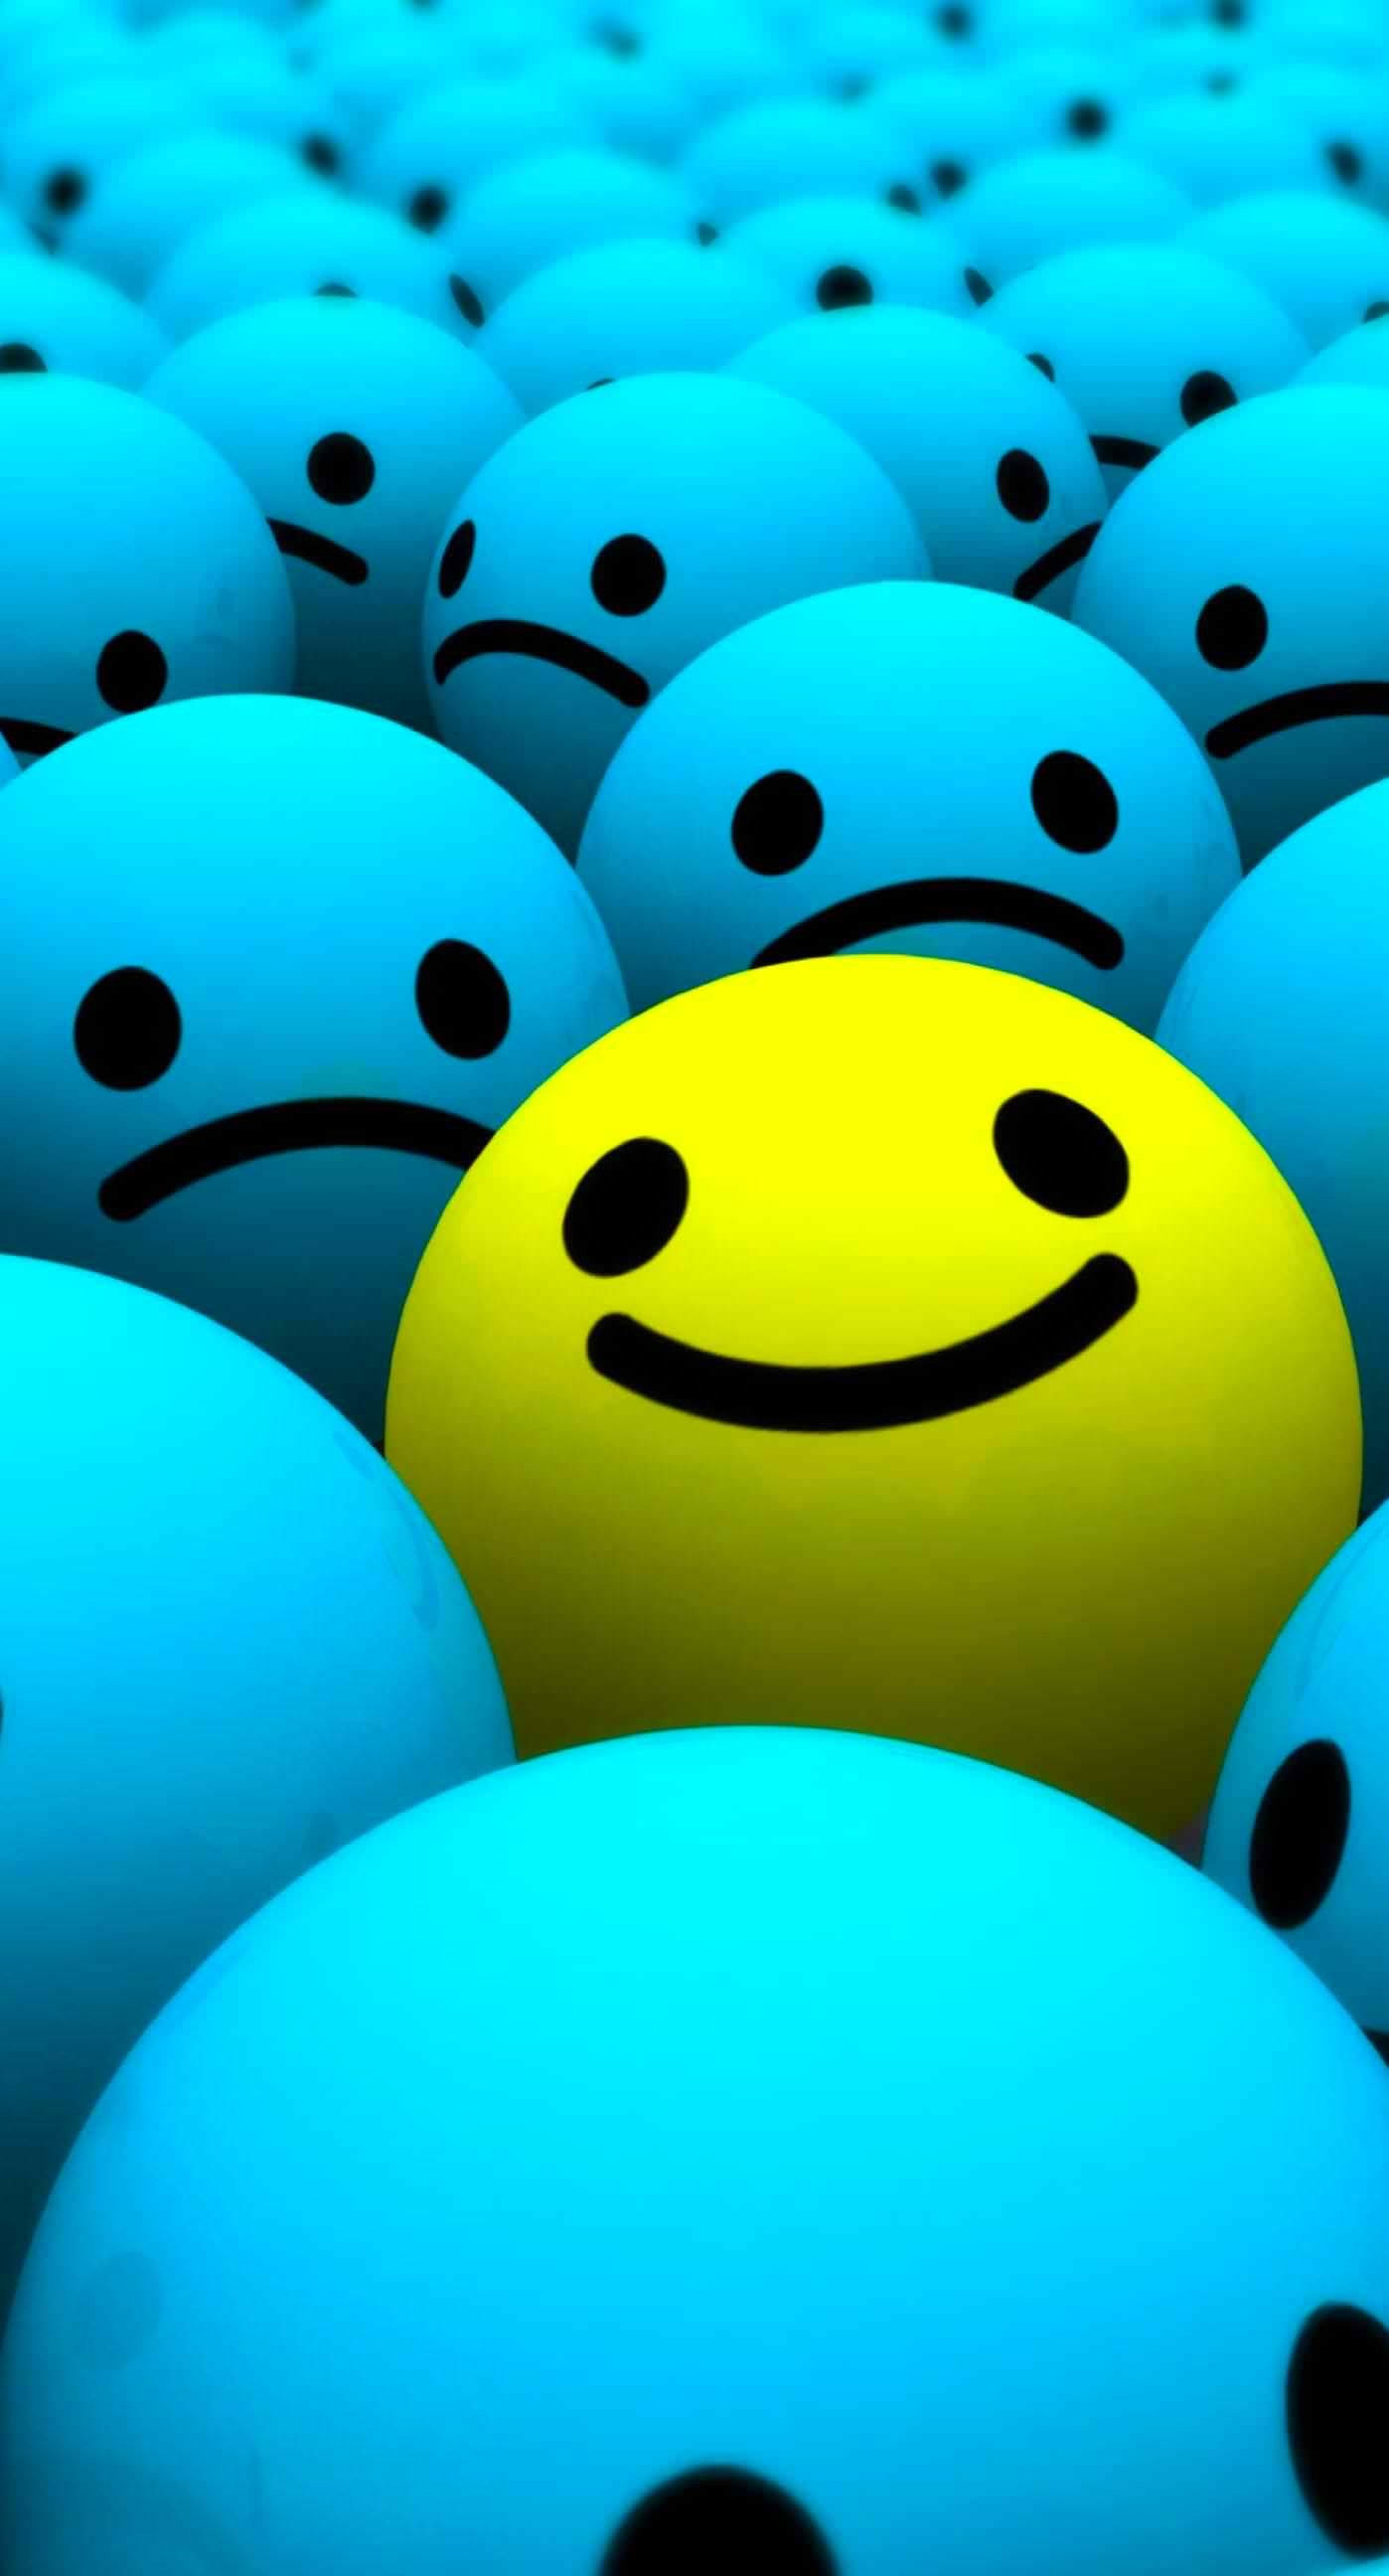 Cute Emoji Wallpapers For Iphone 57 Images